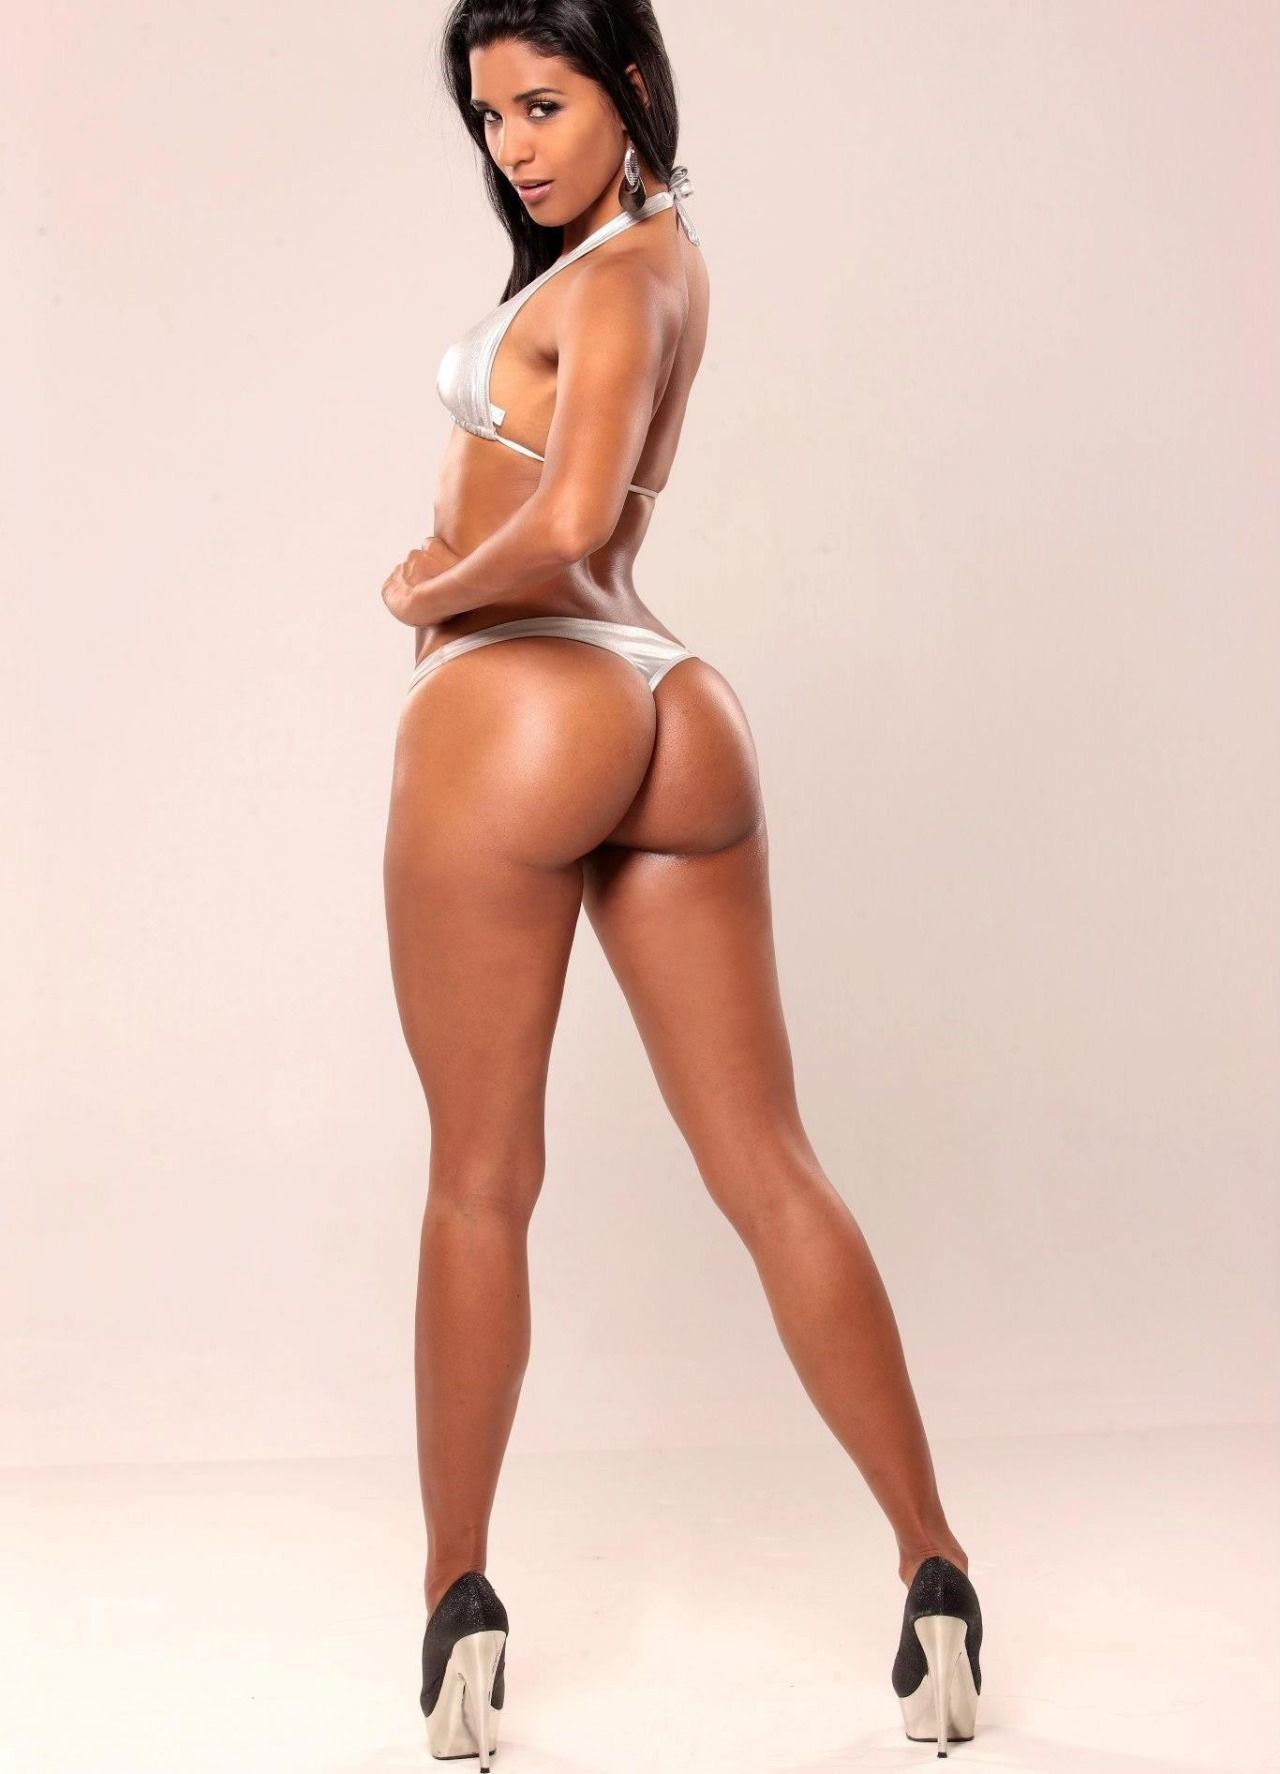 Thick bodied women